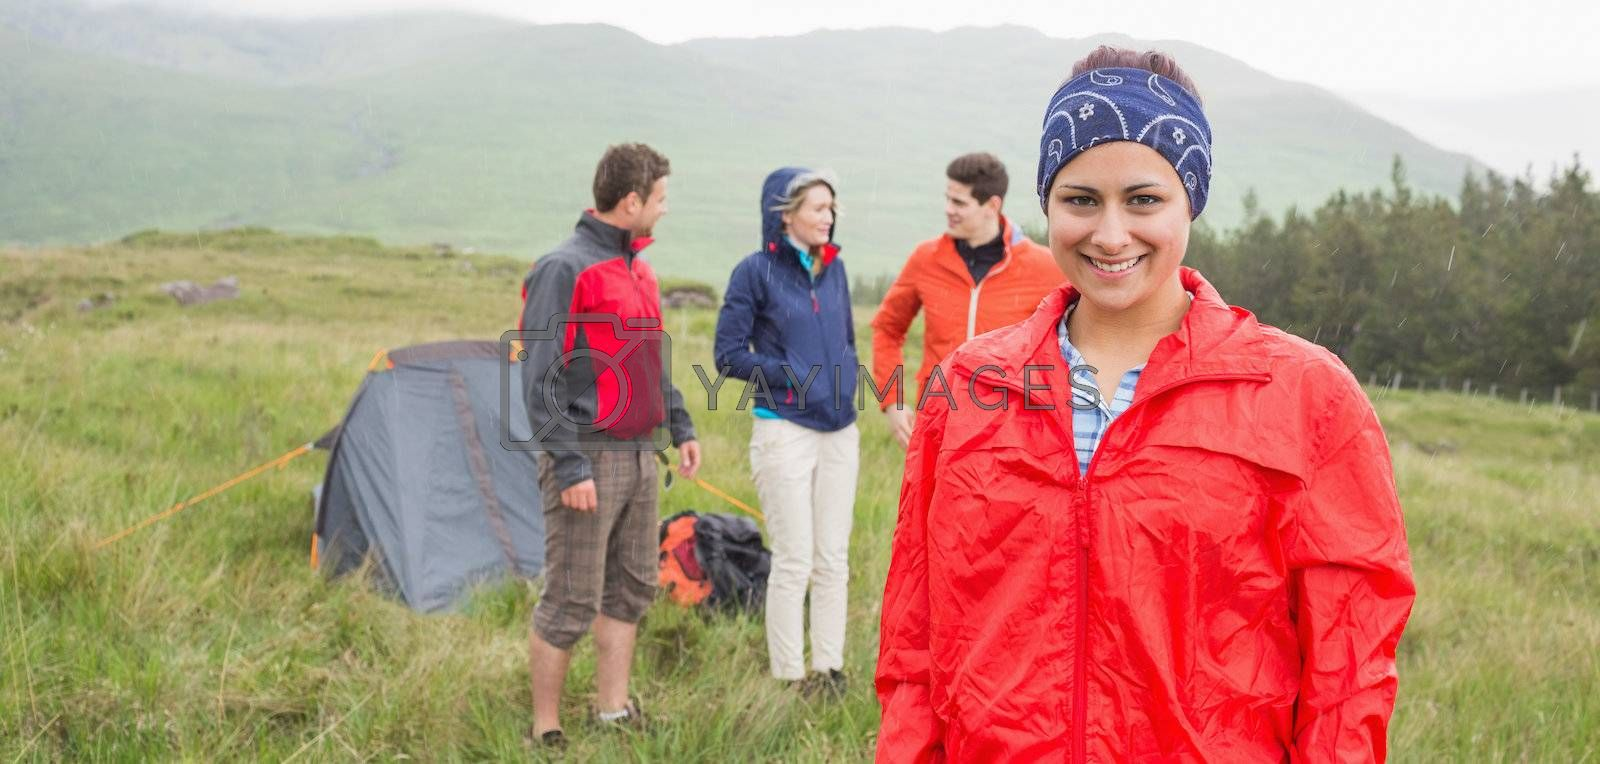 Brunette smiling at camera with friends behind her on camping trip by Wavebreakmedia